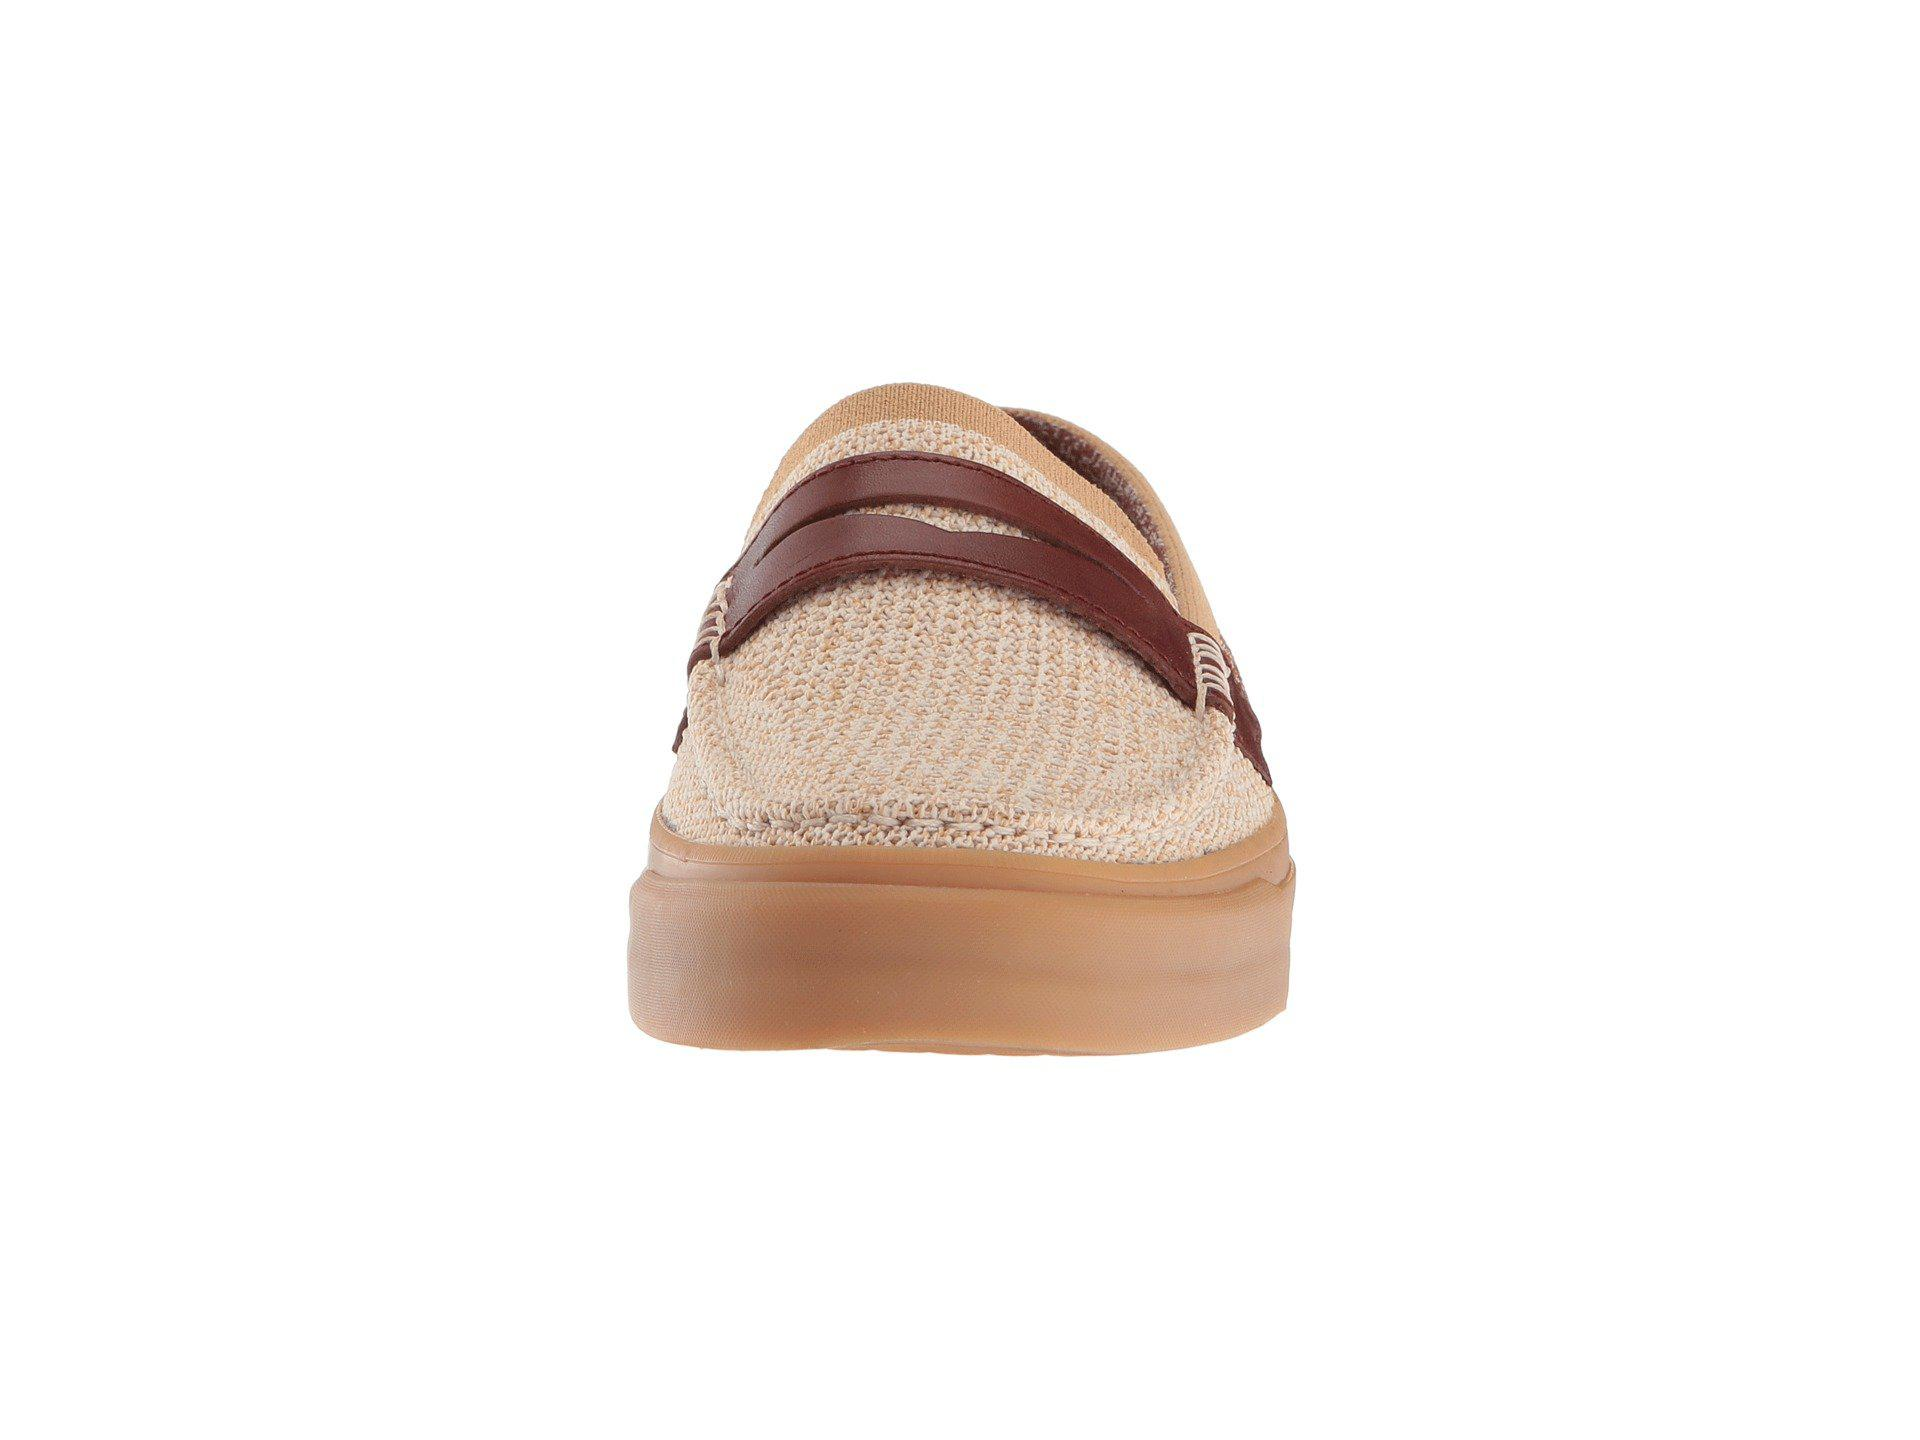 0be058b05db Cole Haan - Multicolor Pinch Weekender Luxe Stitchlite Loafer for Men - Lyst.  View fullscreen